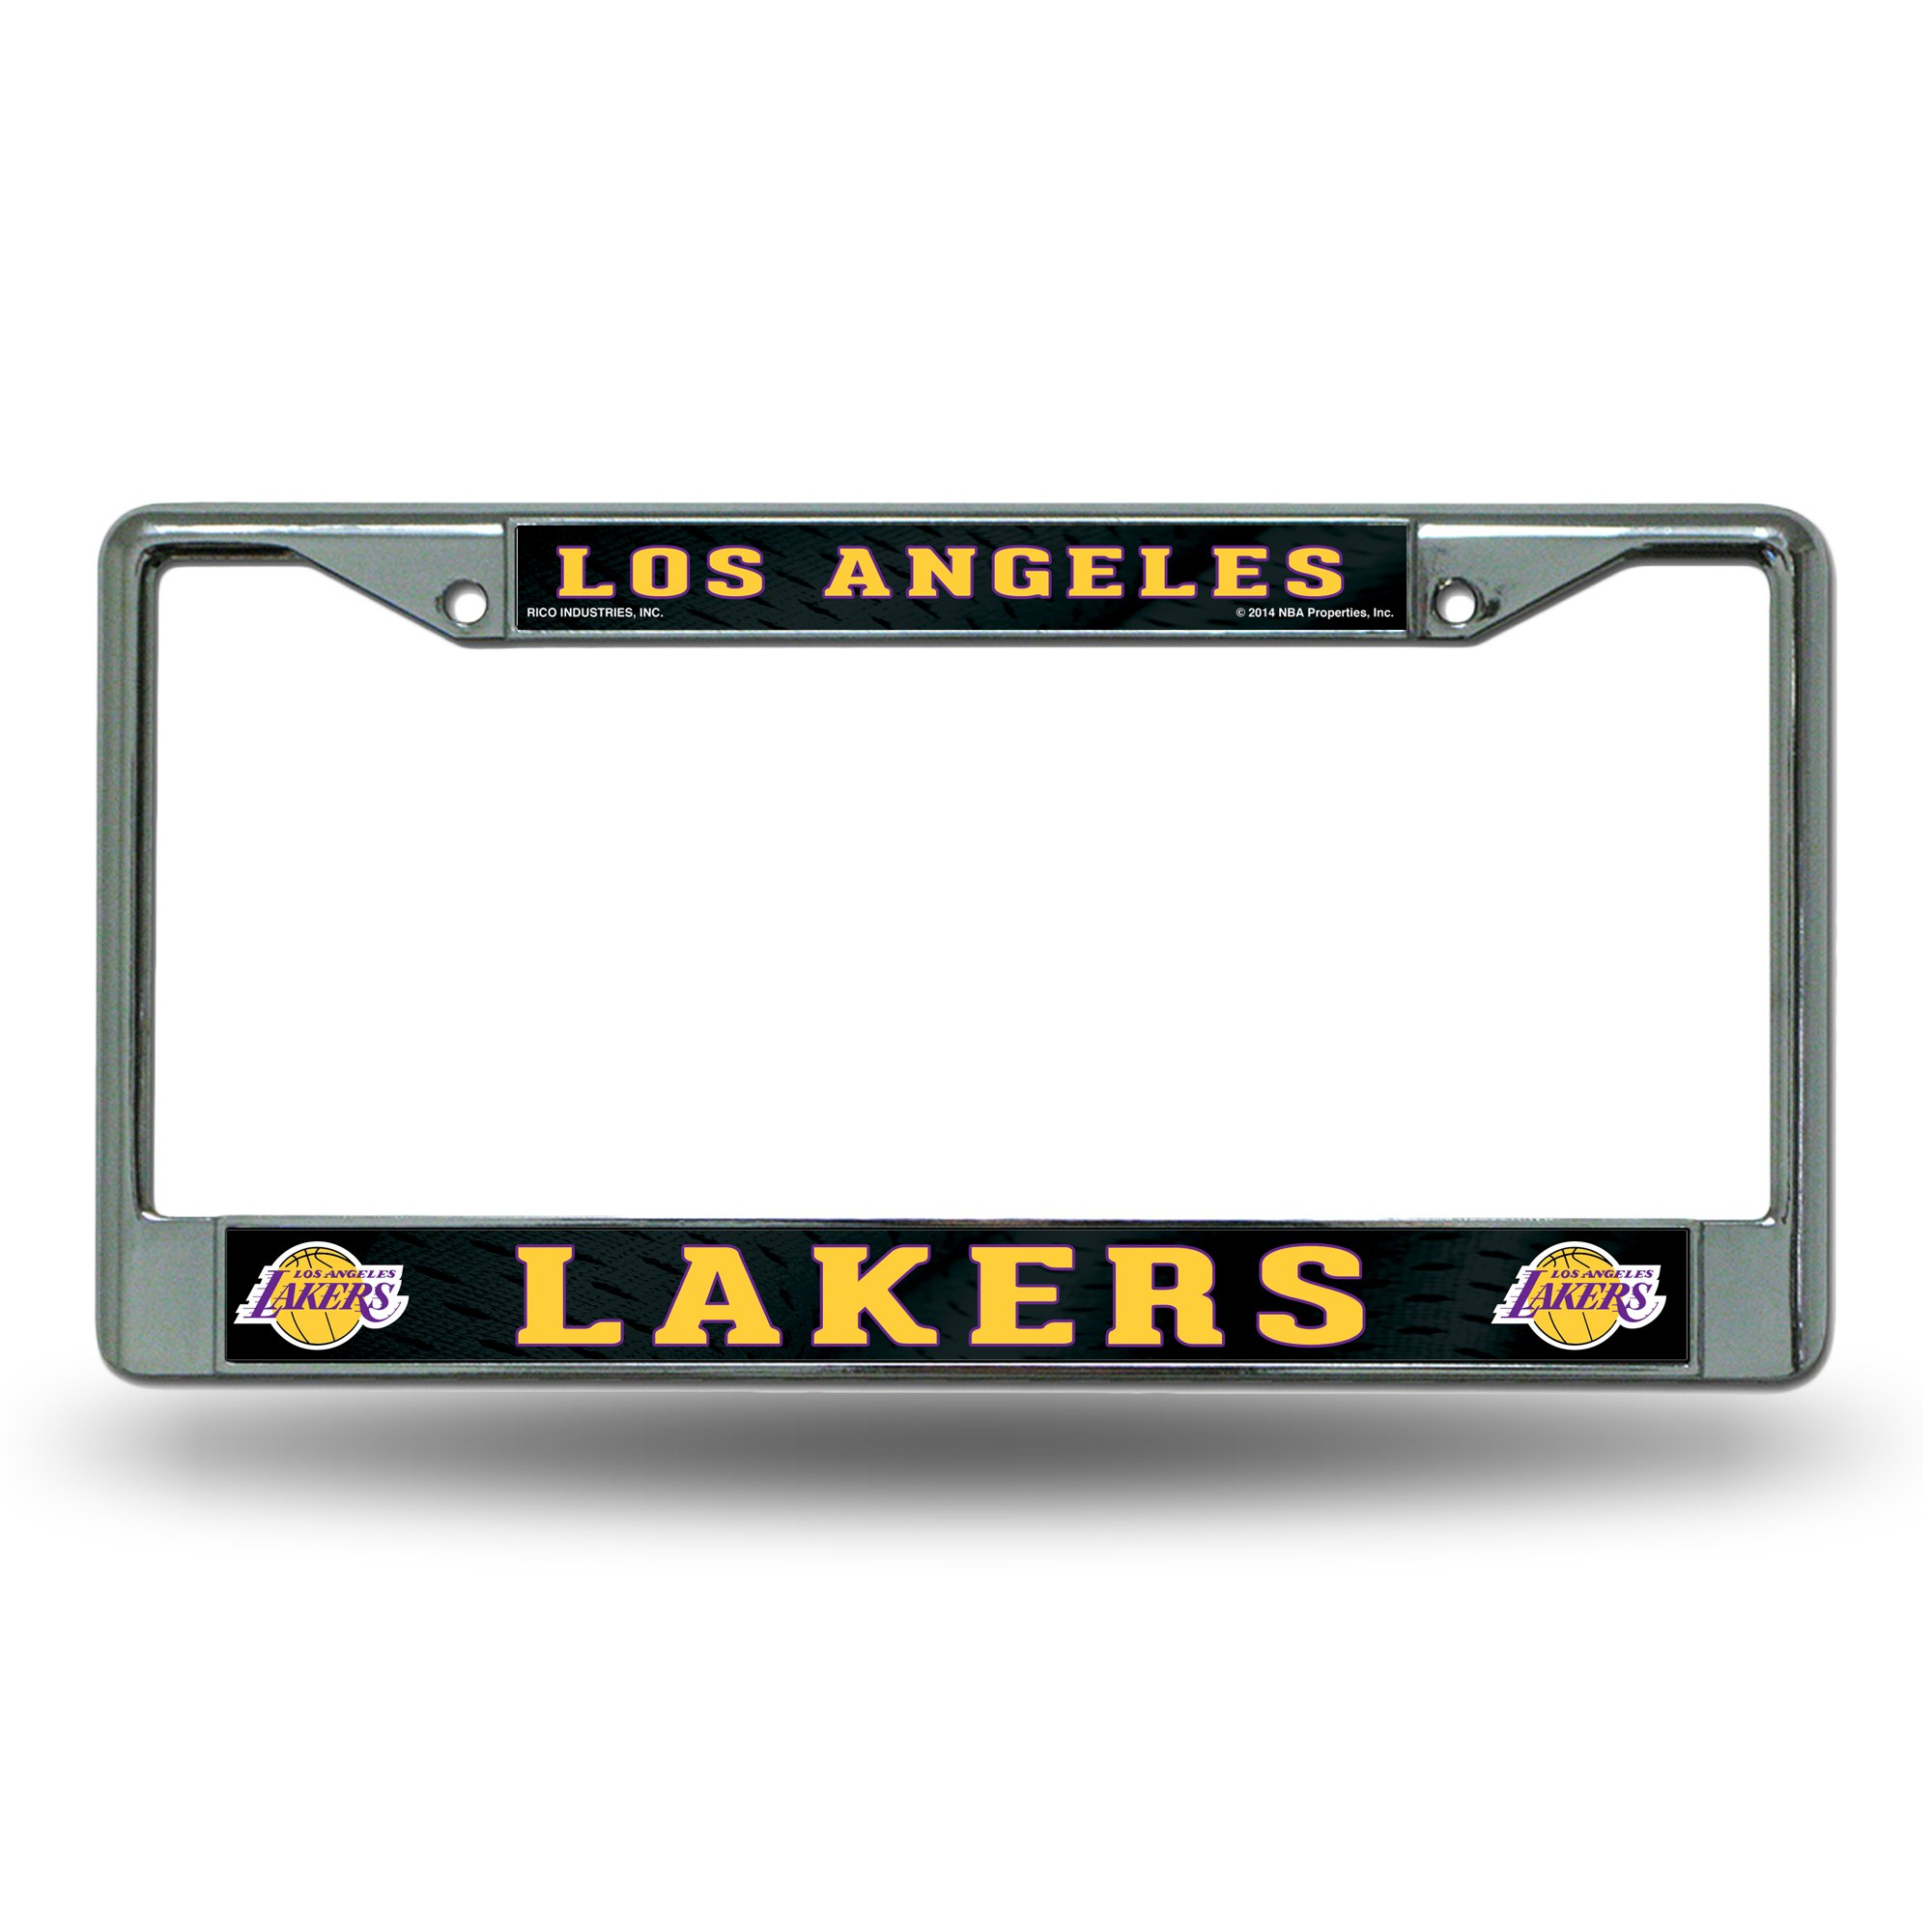 Rico Industries RIC-FC82003 Los Angeles Lakers NBA Chrome License Plate Frame